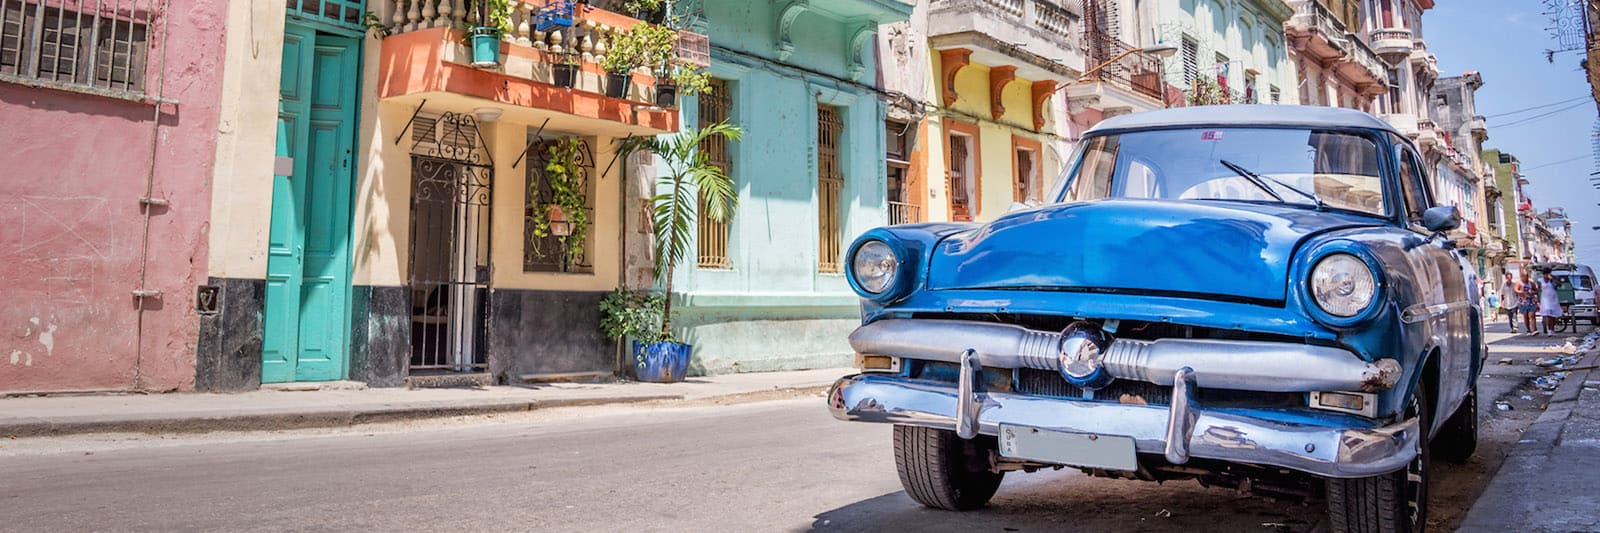 The Perfect Time for a Cuba Photo Tour